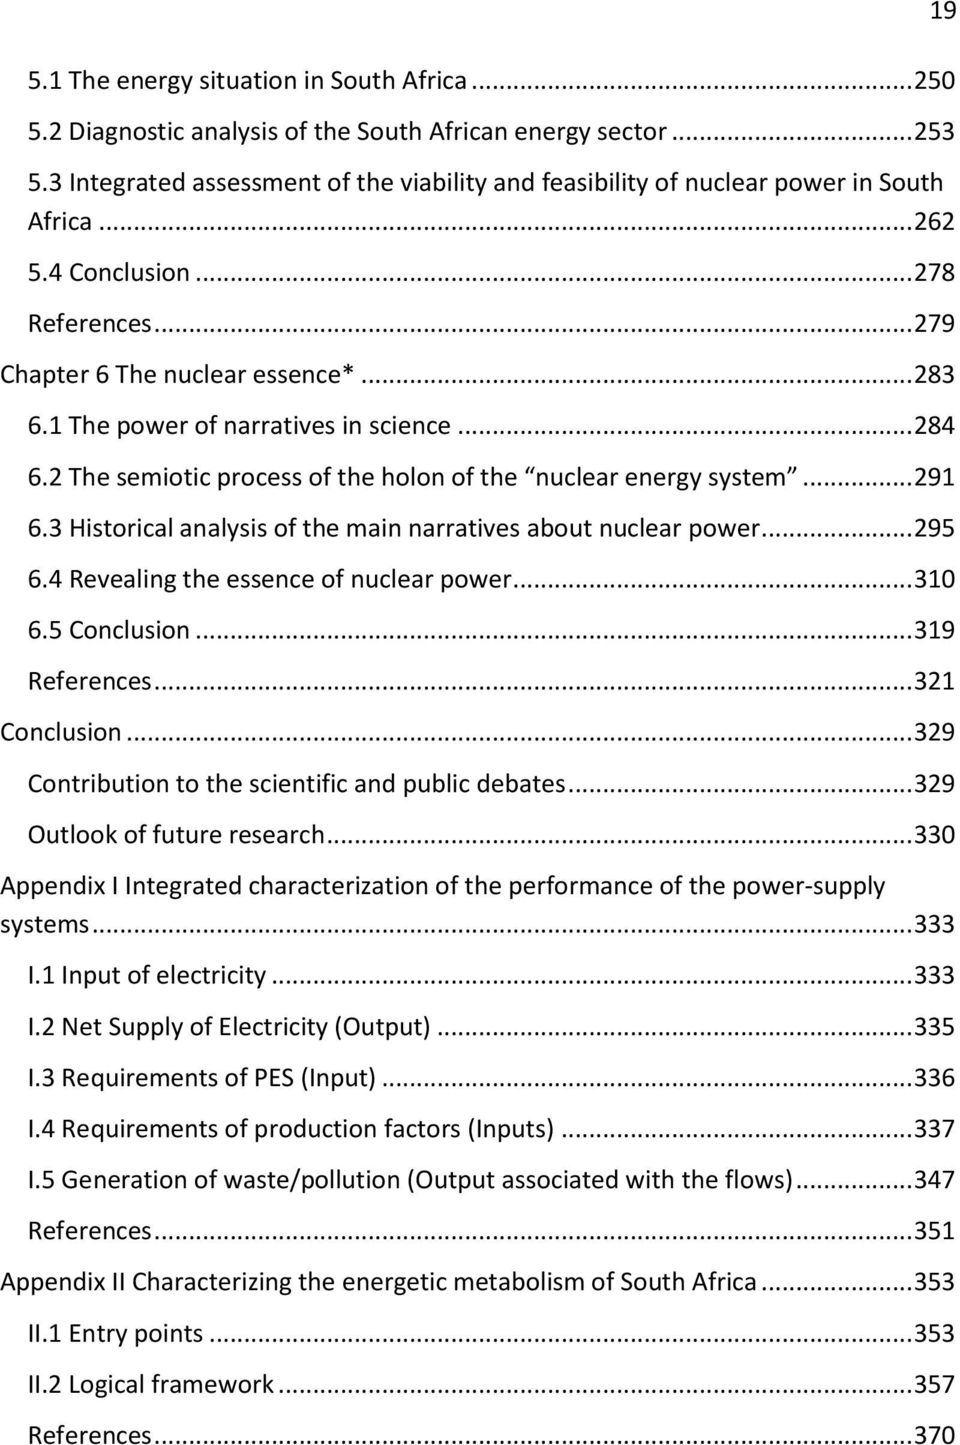 1 The power of narratives in science... 284 6.2 The semiotic process of the holon of the nuclear energy system... 291 6.3 Historical analysis of the main narratives about nuclear power... 295 6.